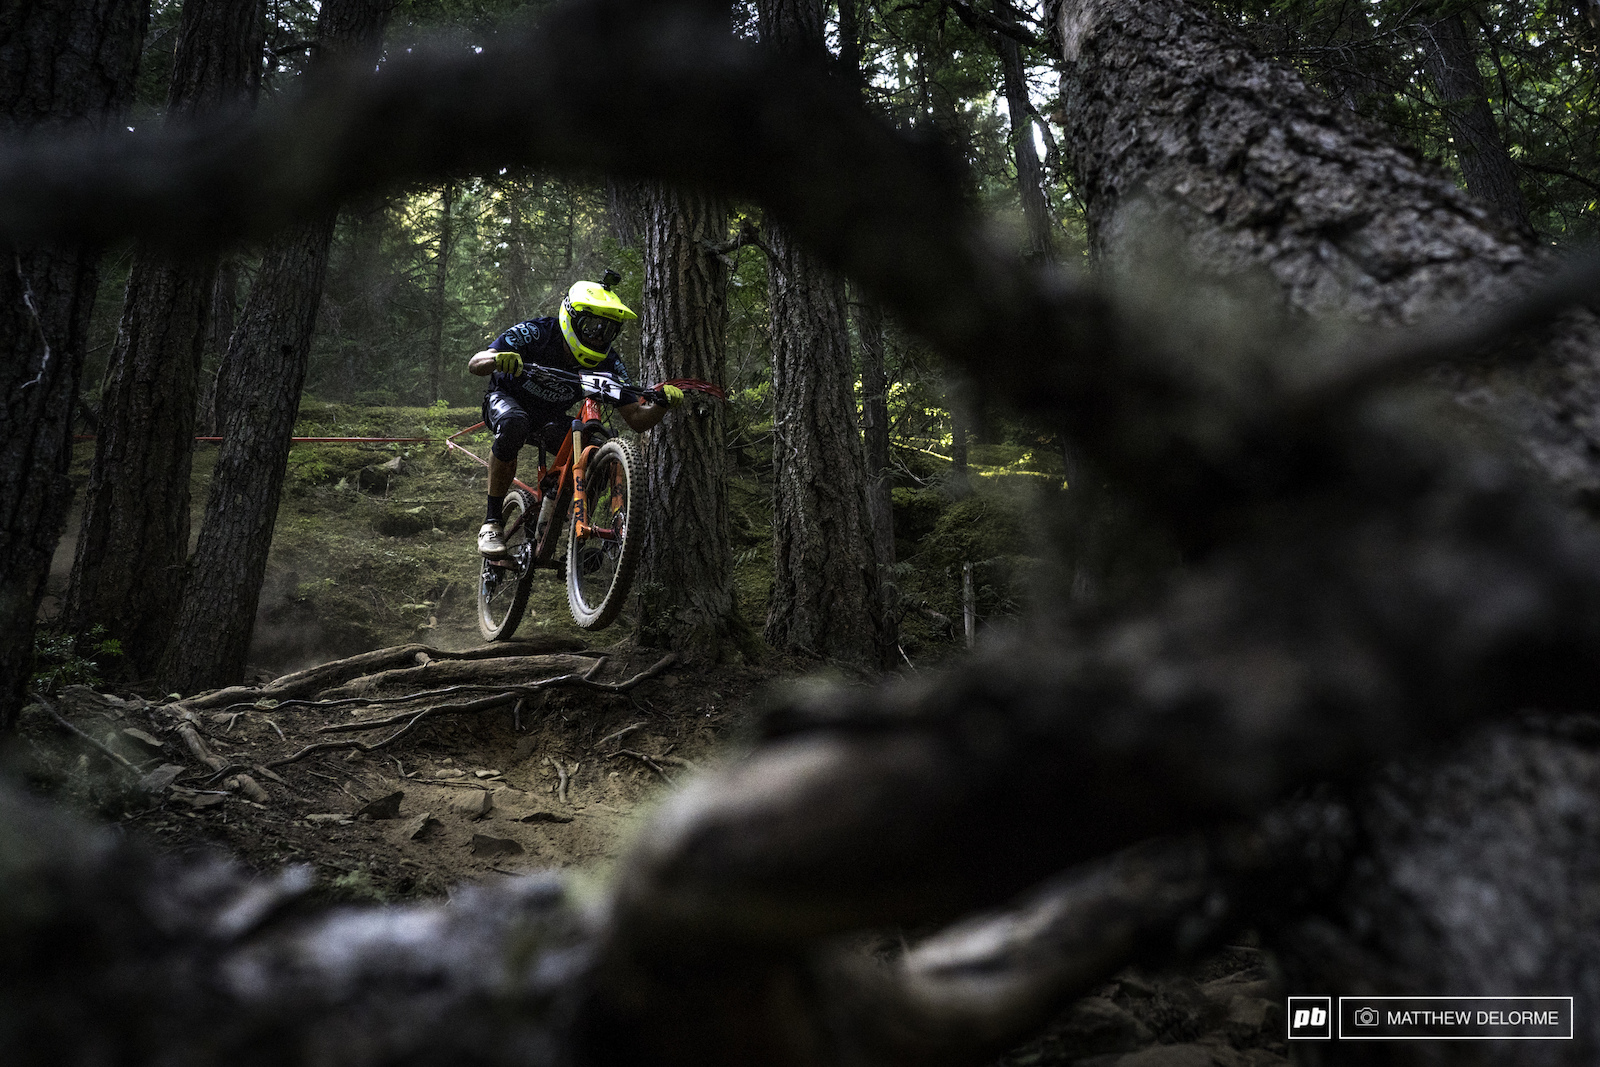 Robin Walner finding that the quickest way through the roots is to not touch them with his tires.